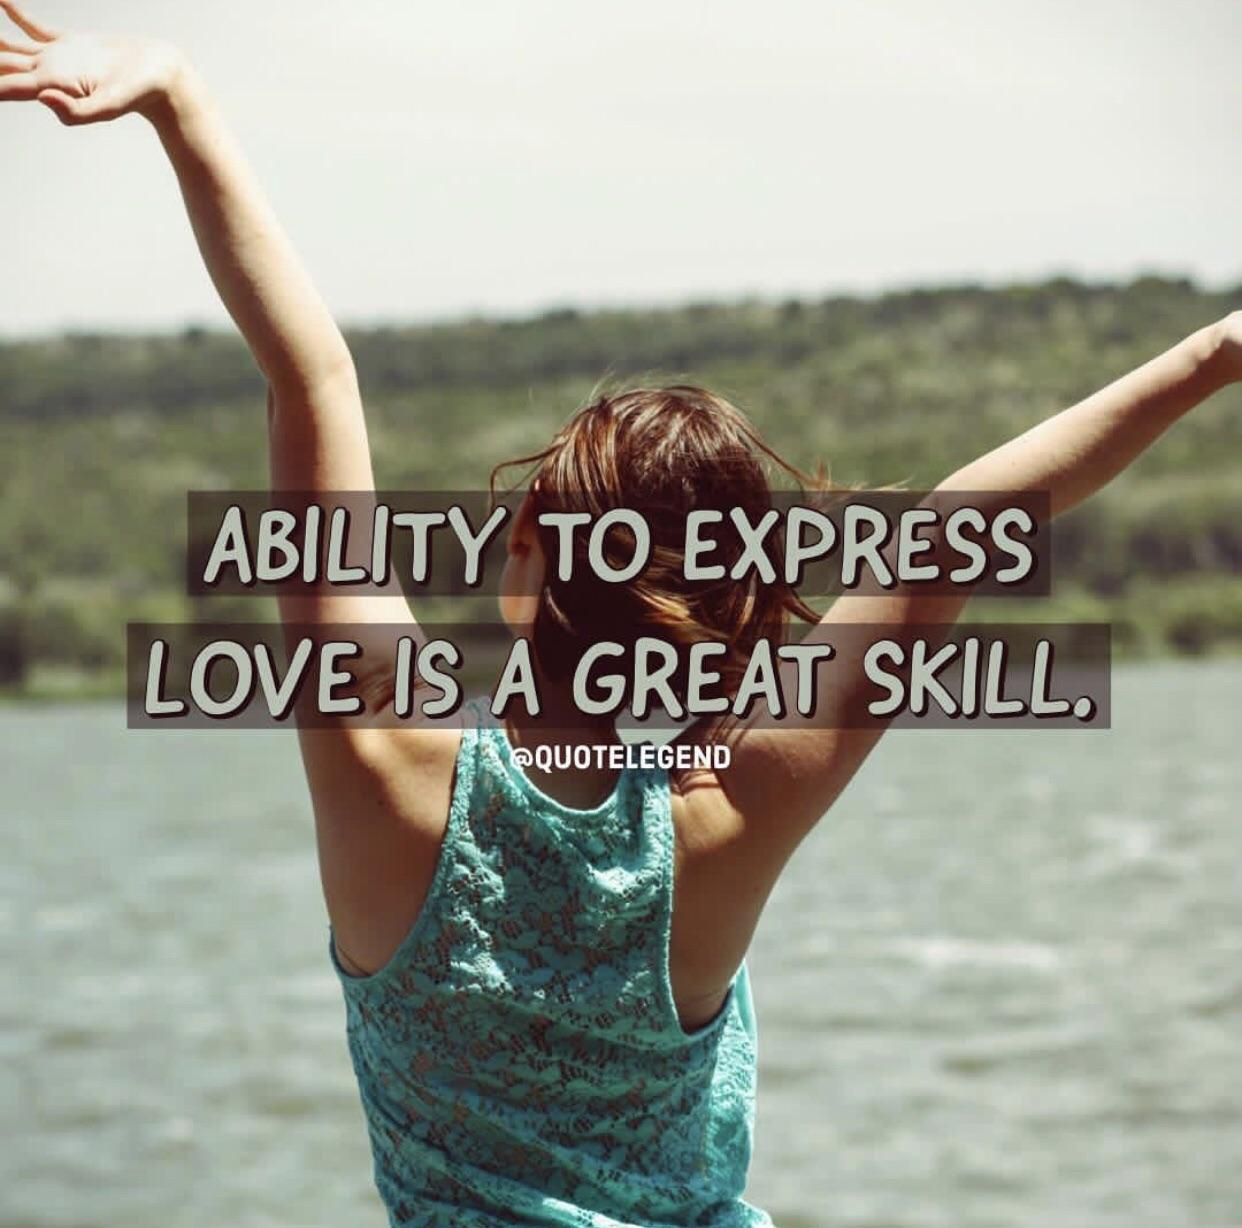 """Ability to express love is a great skill""-quotelegend [1242×1185][OC]"